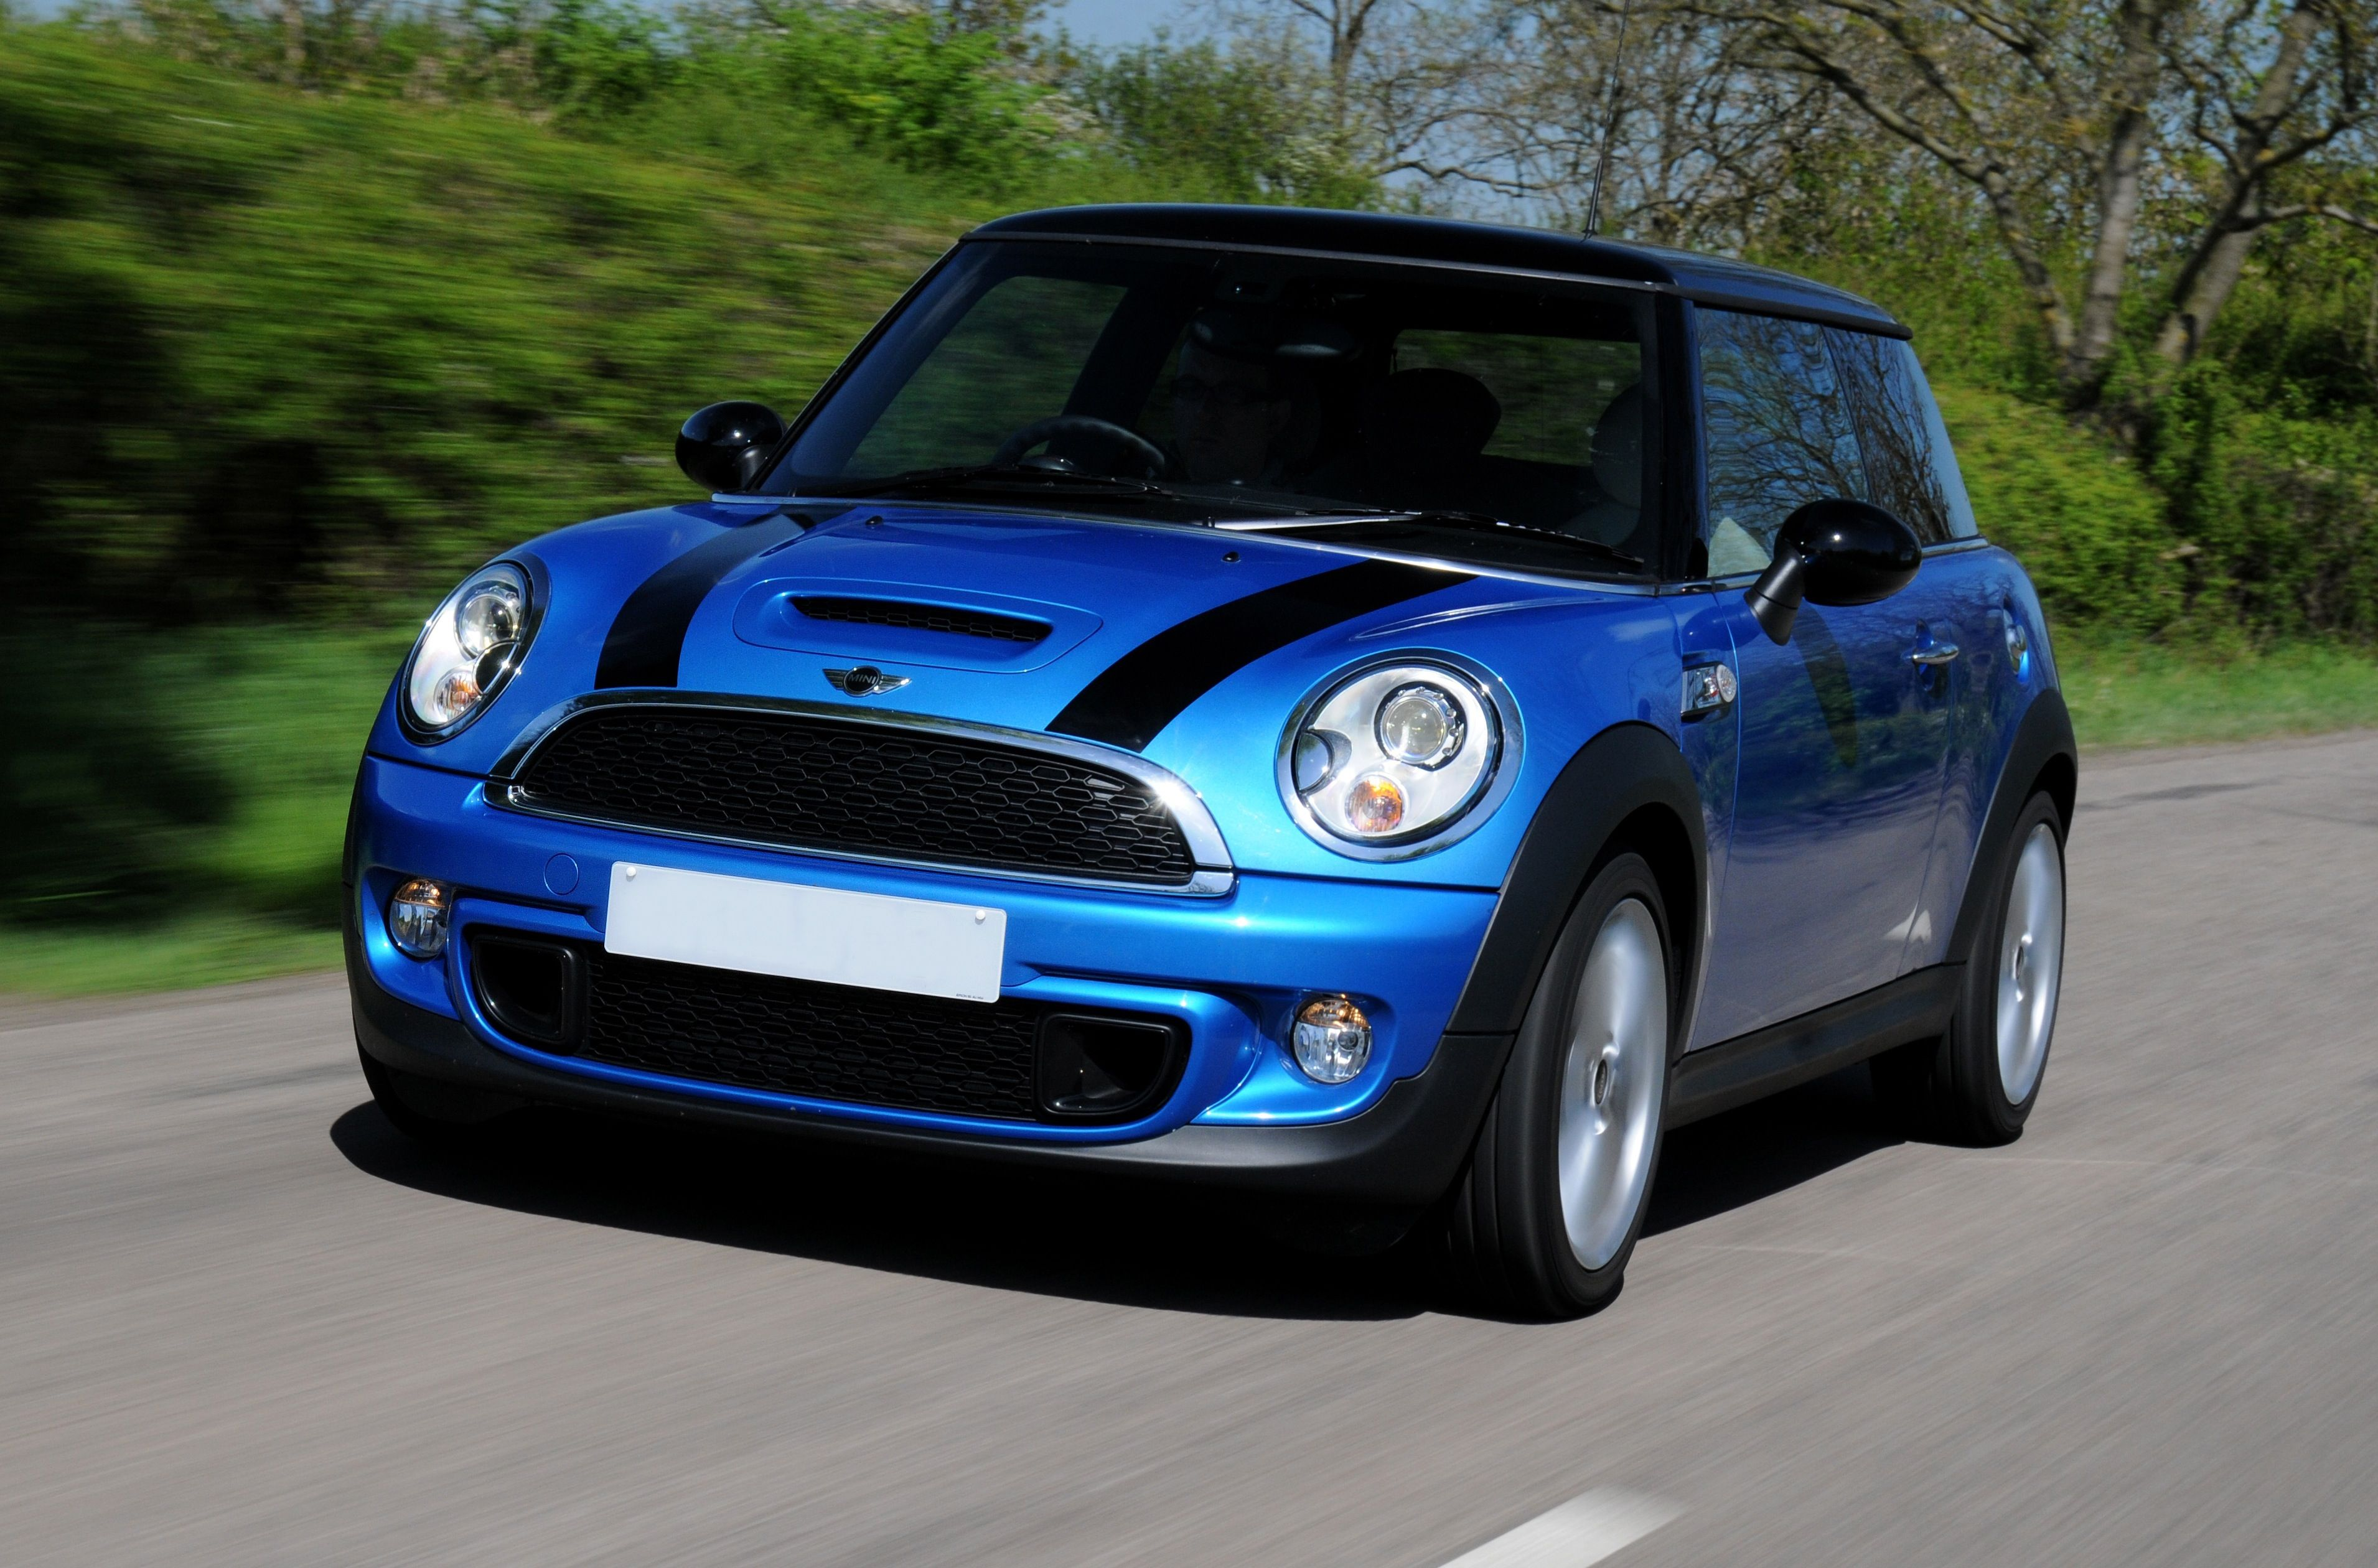 Mini Cooper Blue With Black Stripes Stunning Colour Dream Car